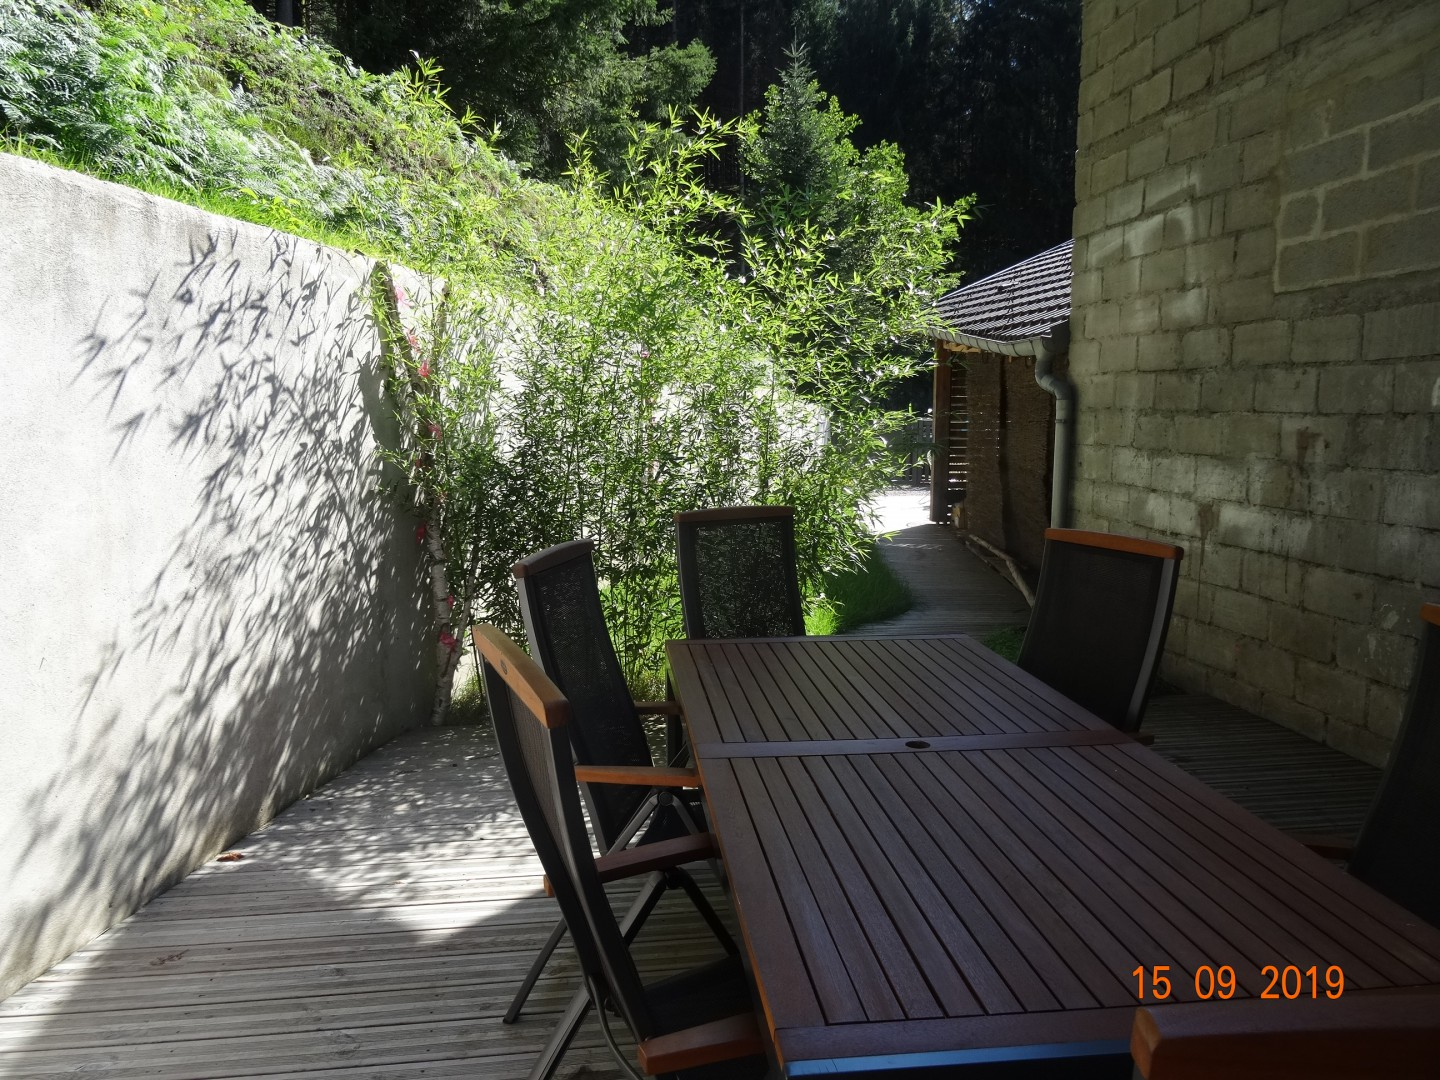 Appartement in Le Tholy van 125m2.